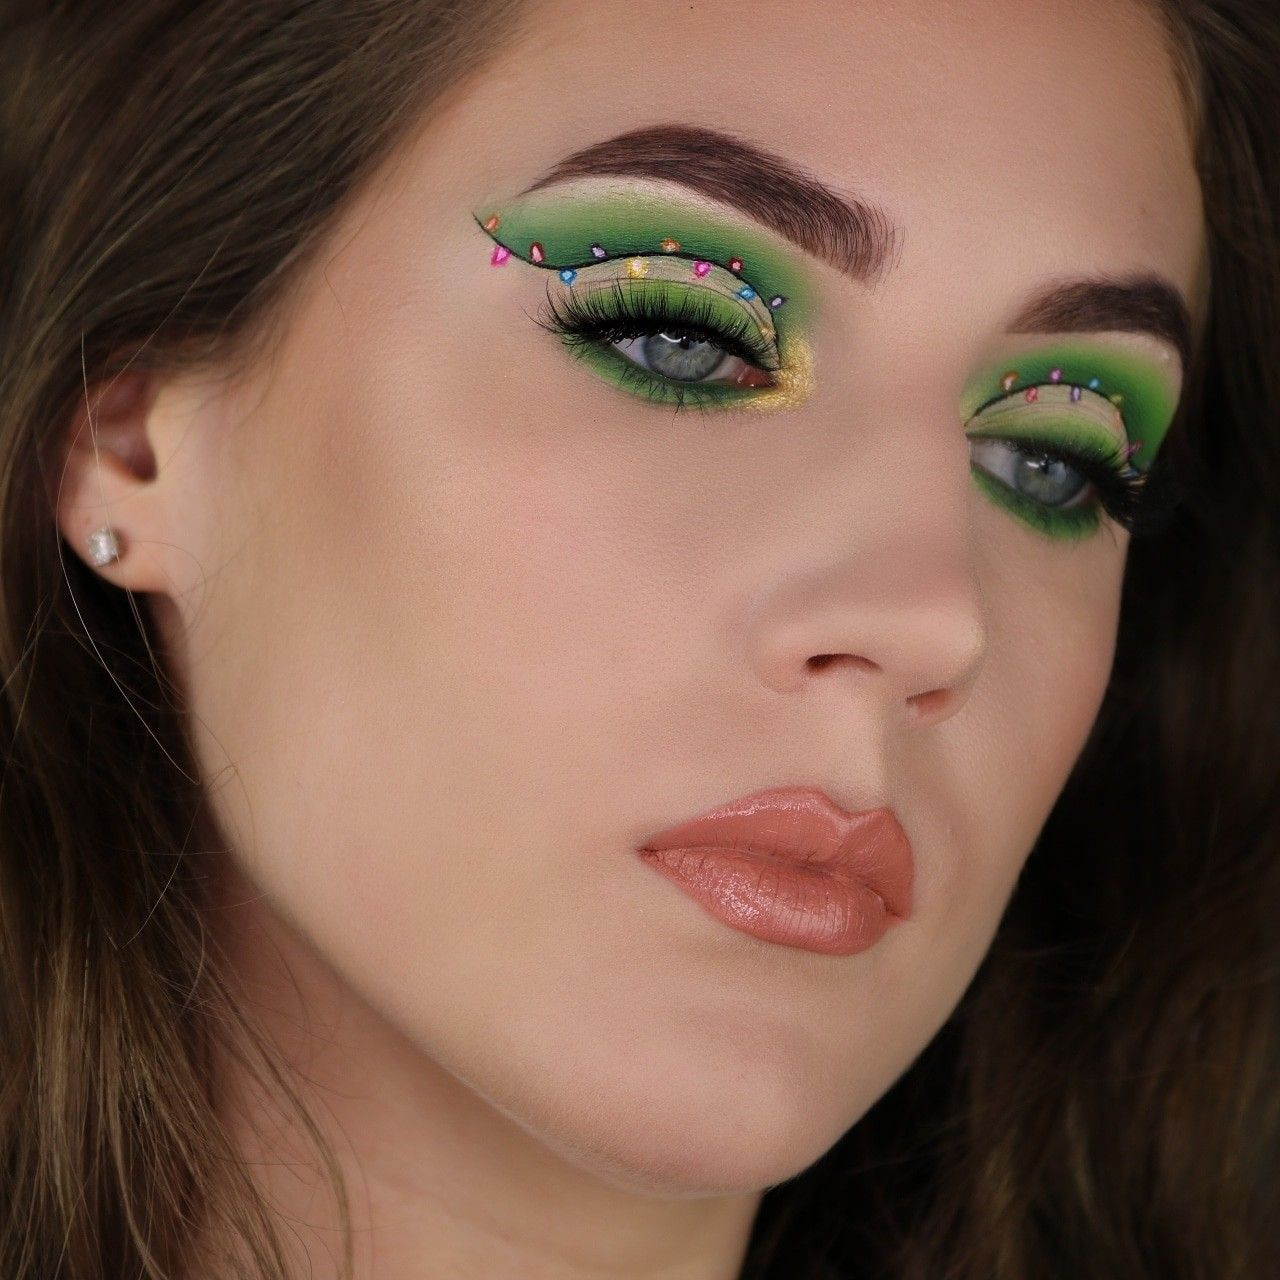 I did this look using the morphe James Charles palette! It